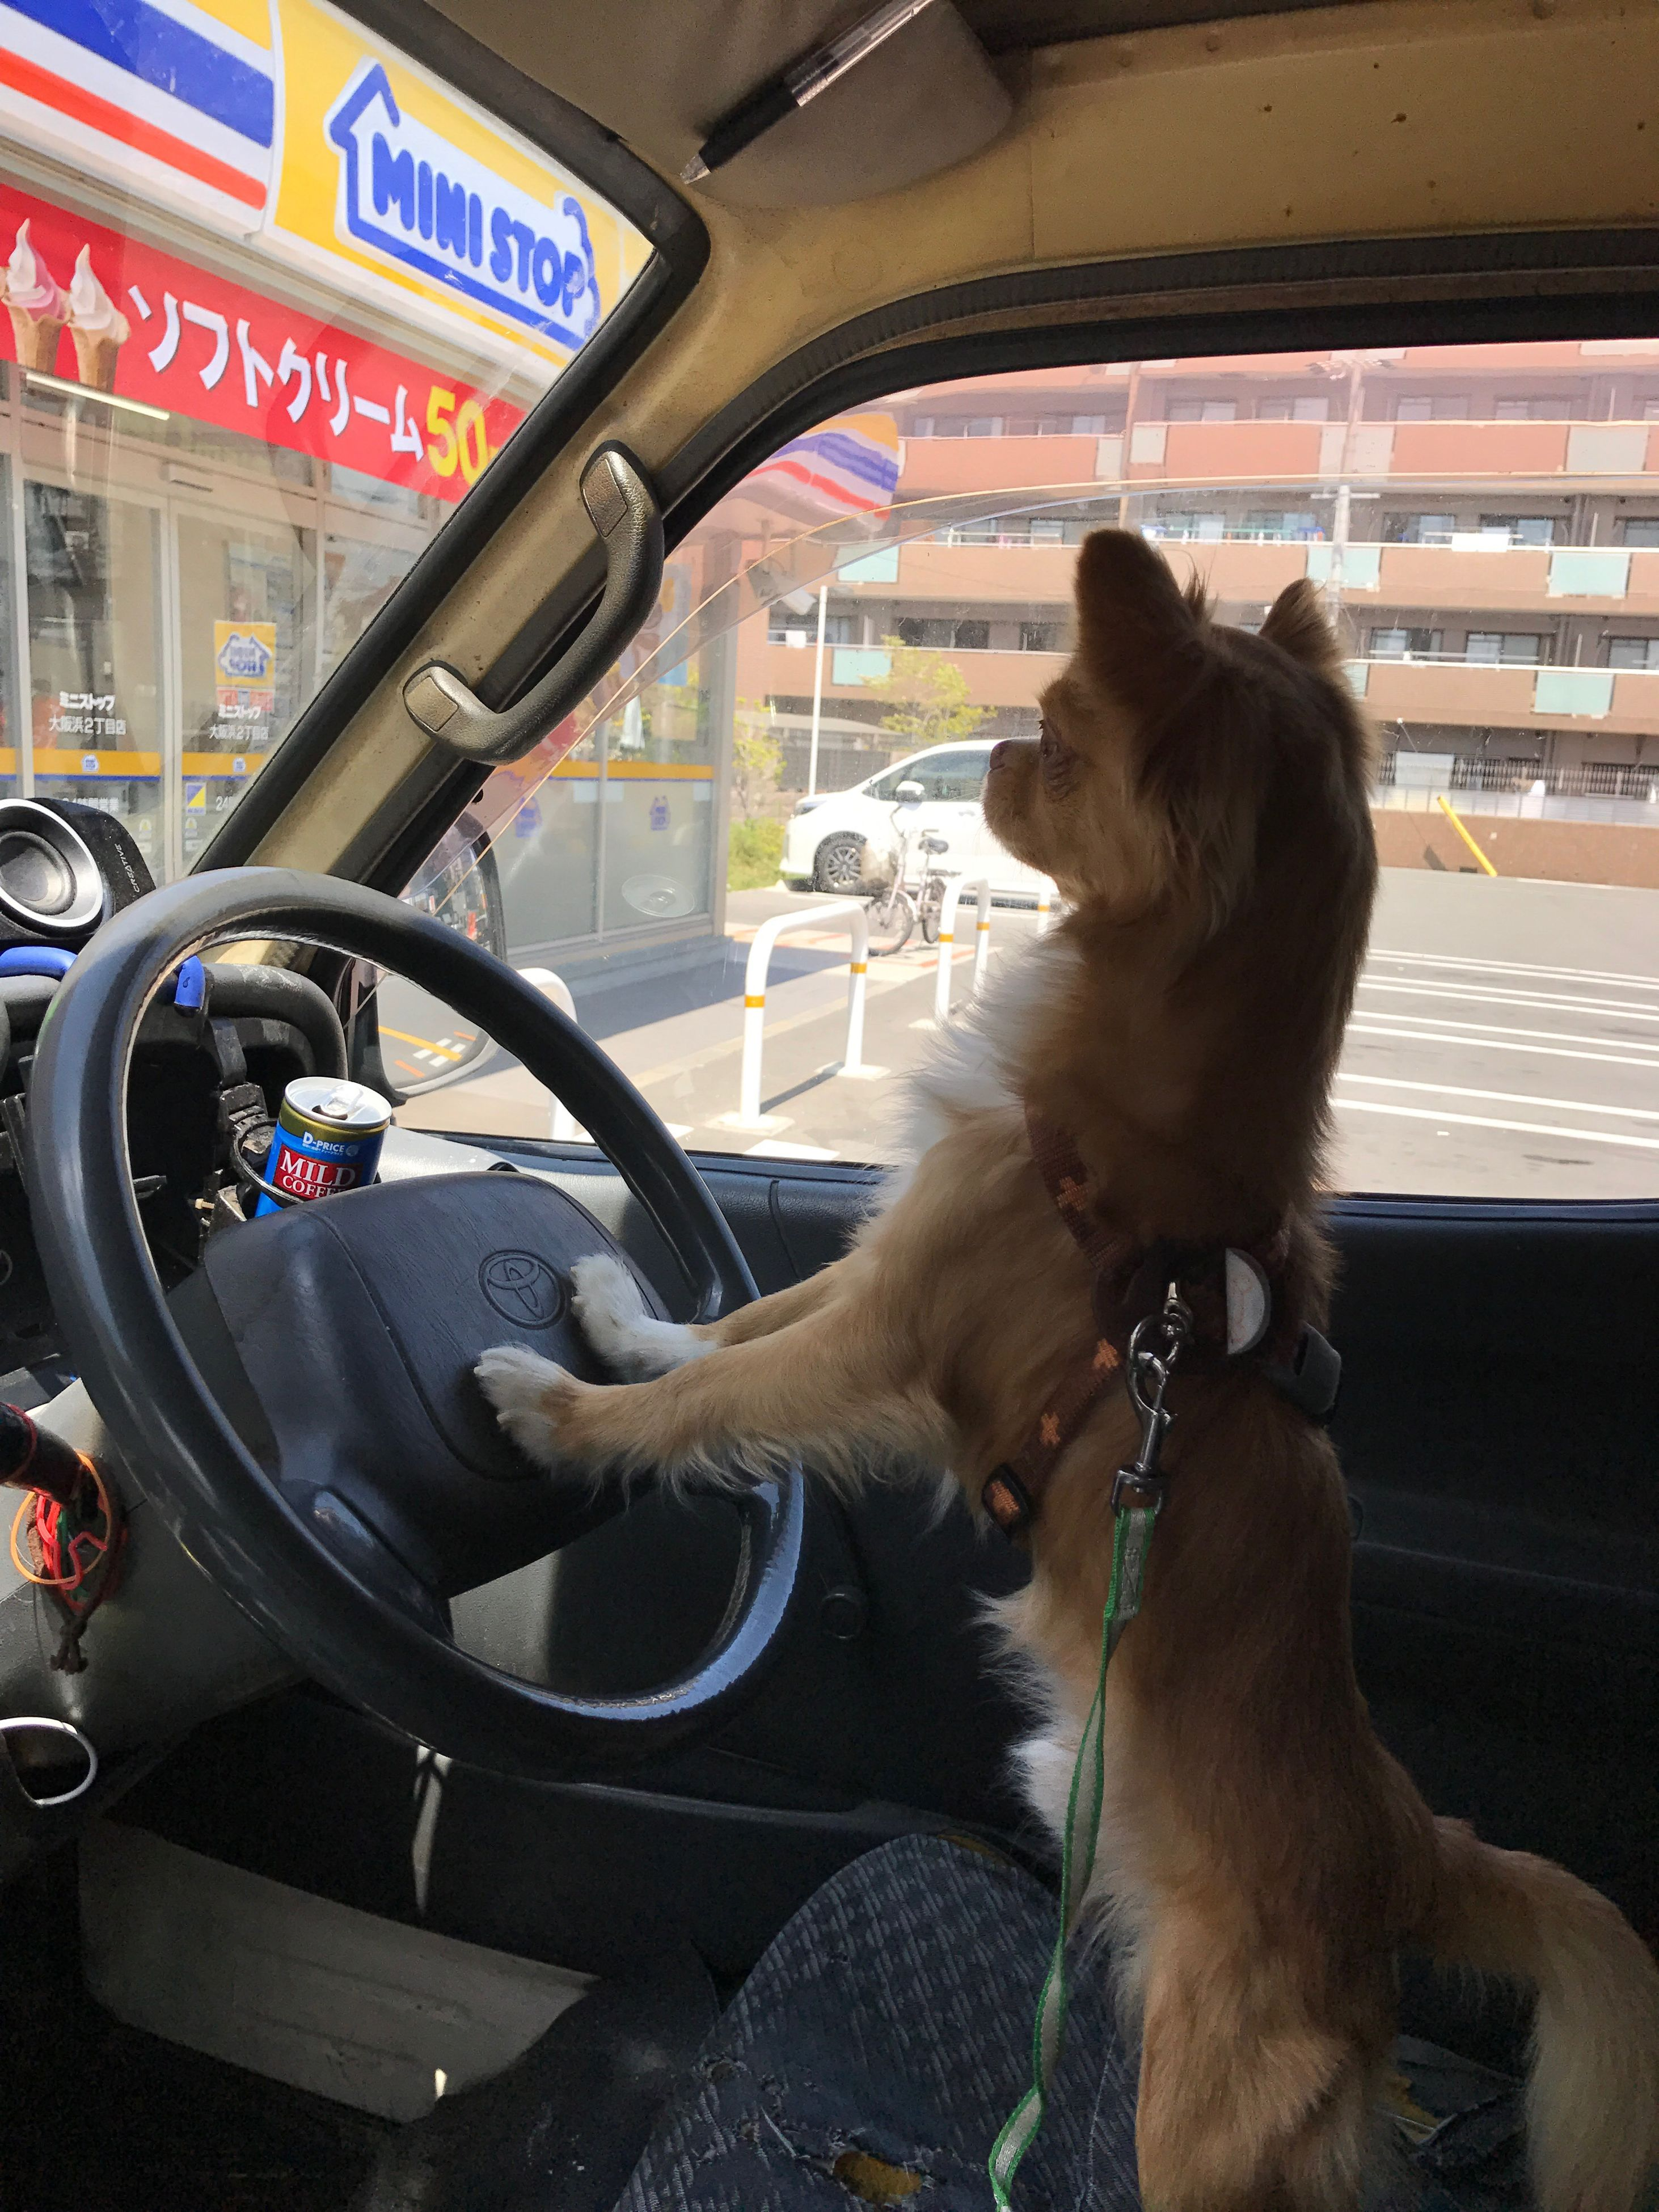 transportation, car, vehicle interior, mode of transport, car interior, land vehicle, dog, steering wheel, mammal, dashboard, vehicle seat, domestic animals, pets, day, no people, animal themes, outdoors